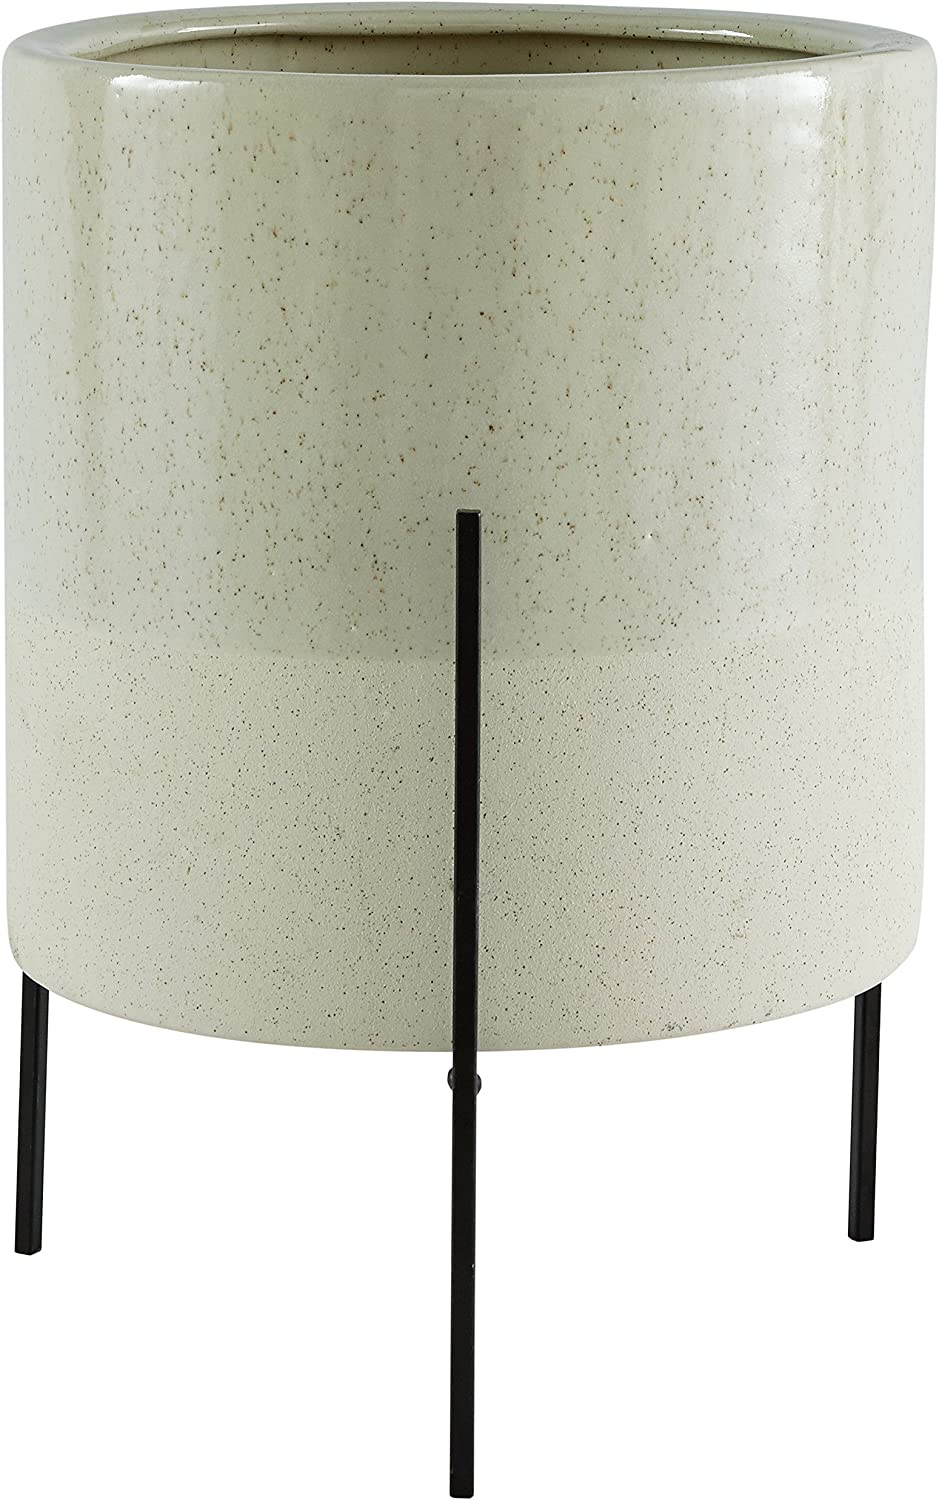 Rivet Mid-Century Ceramic Planter with Iron Stand, 17 H, Pale Green